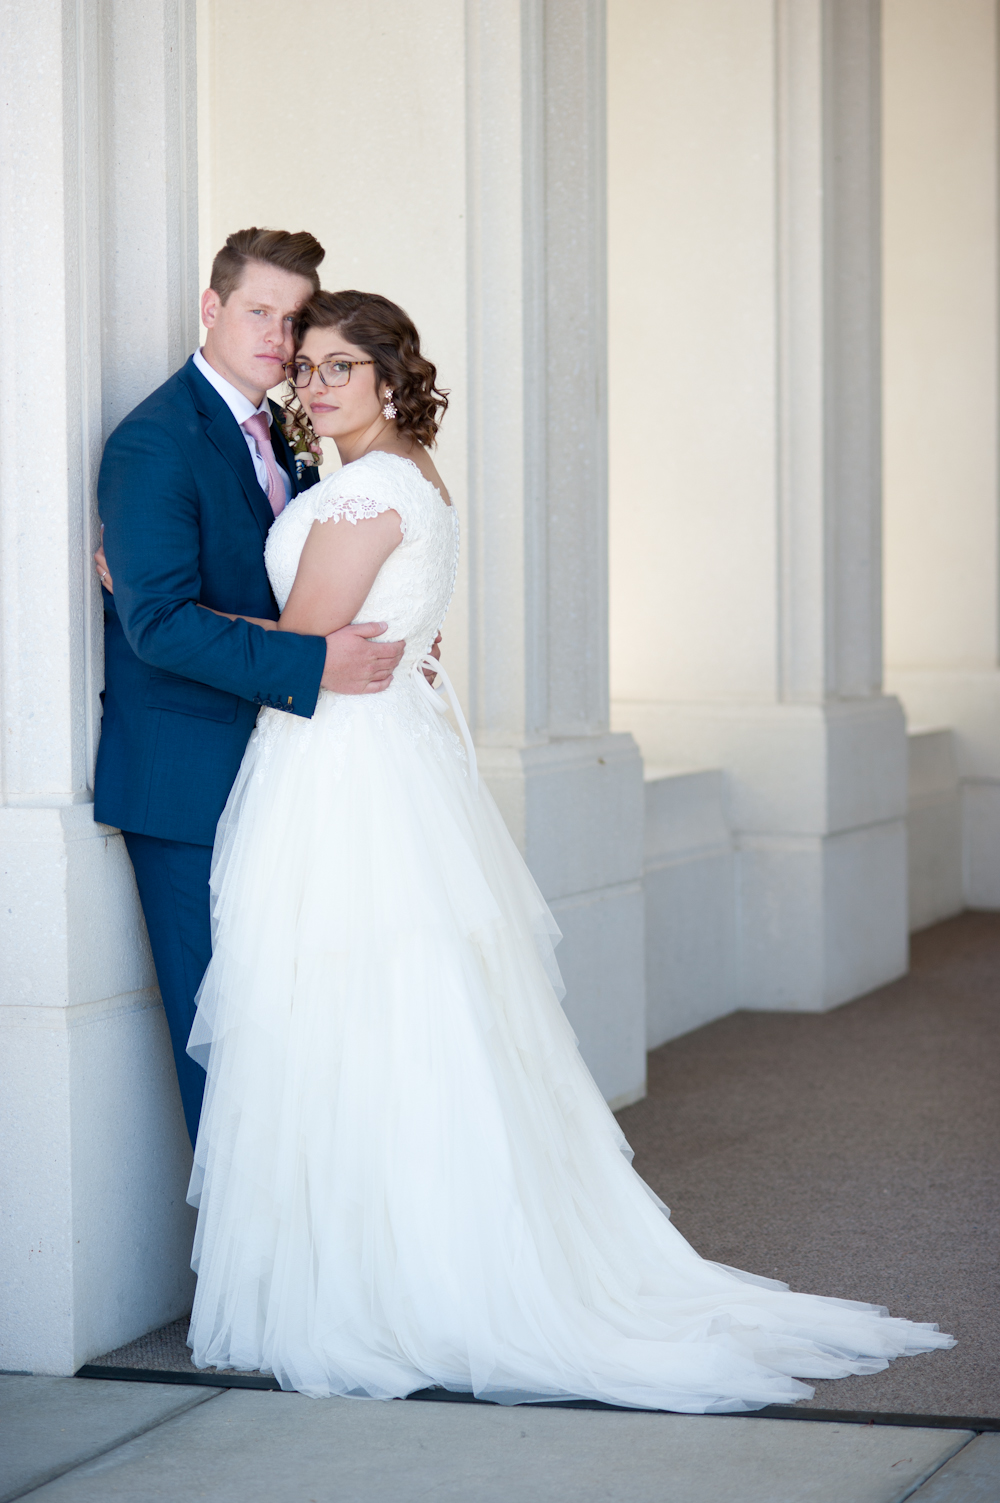 Bride and groom at the Rexburg LDS Temple